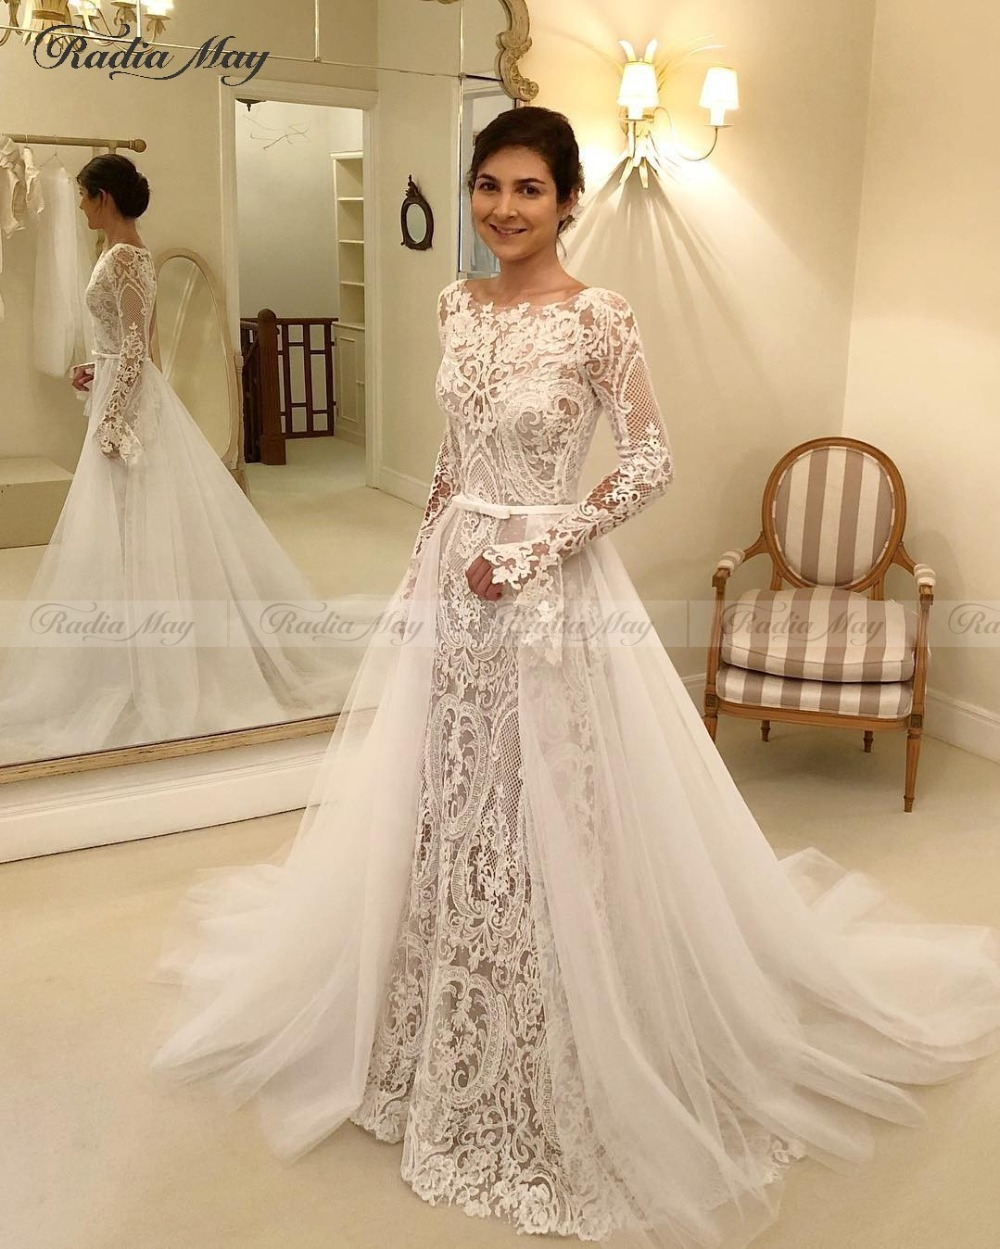 us $218.4 20% off|vintage lace mermaid long sleeves wedding dress with detachable train open back ivory church wedding gowns country bridal dress-in